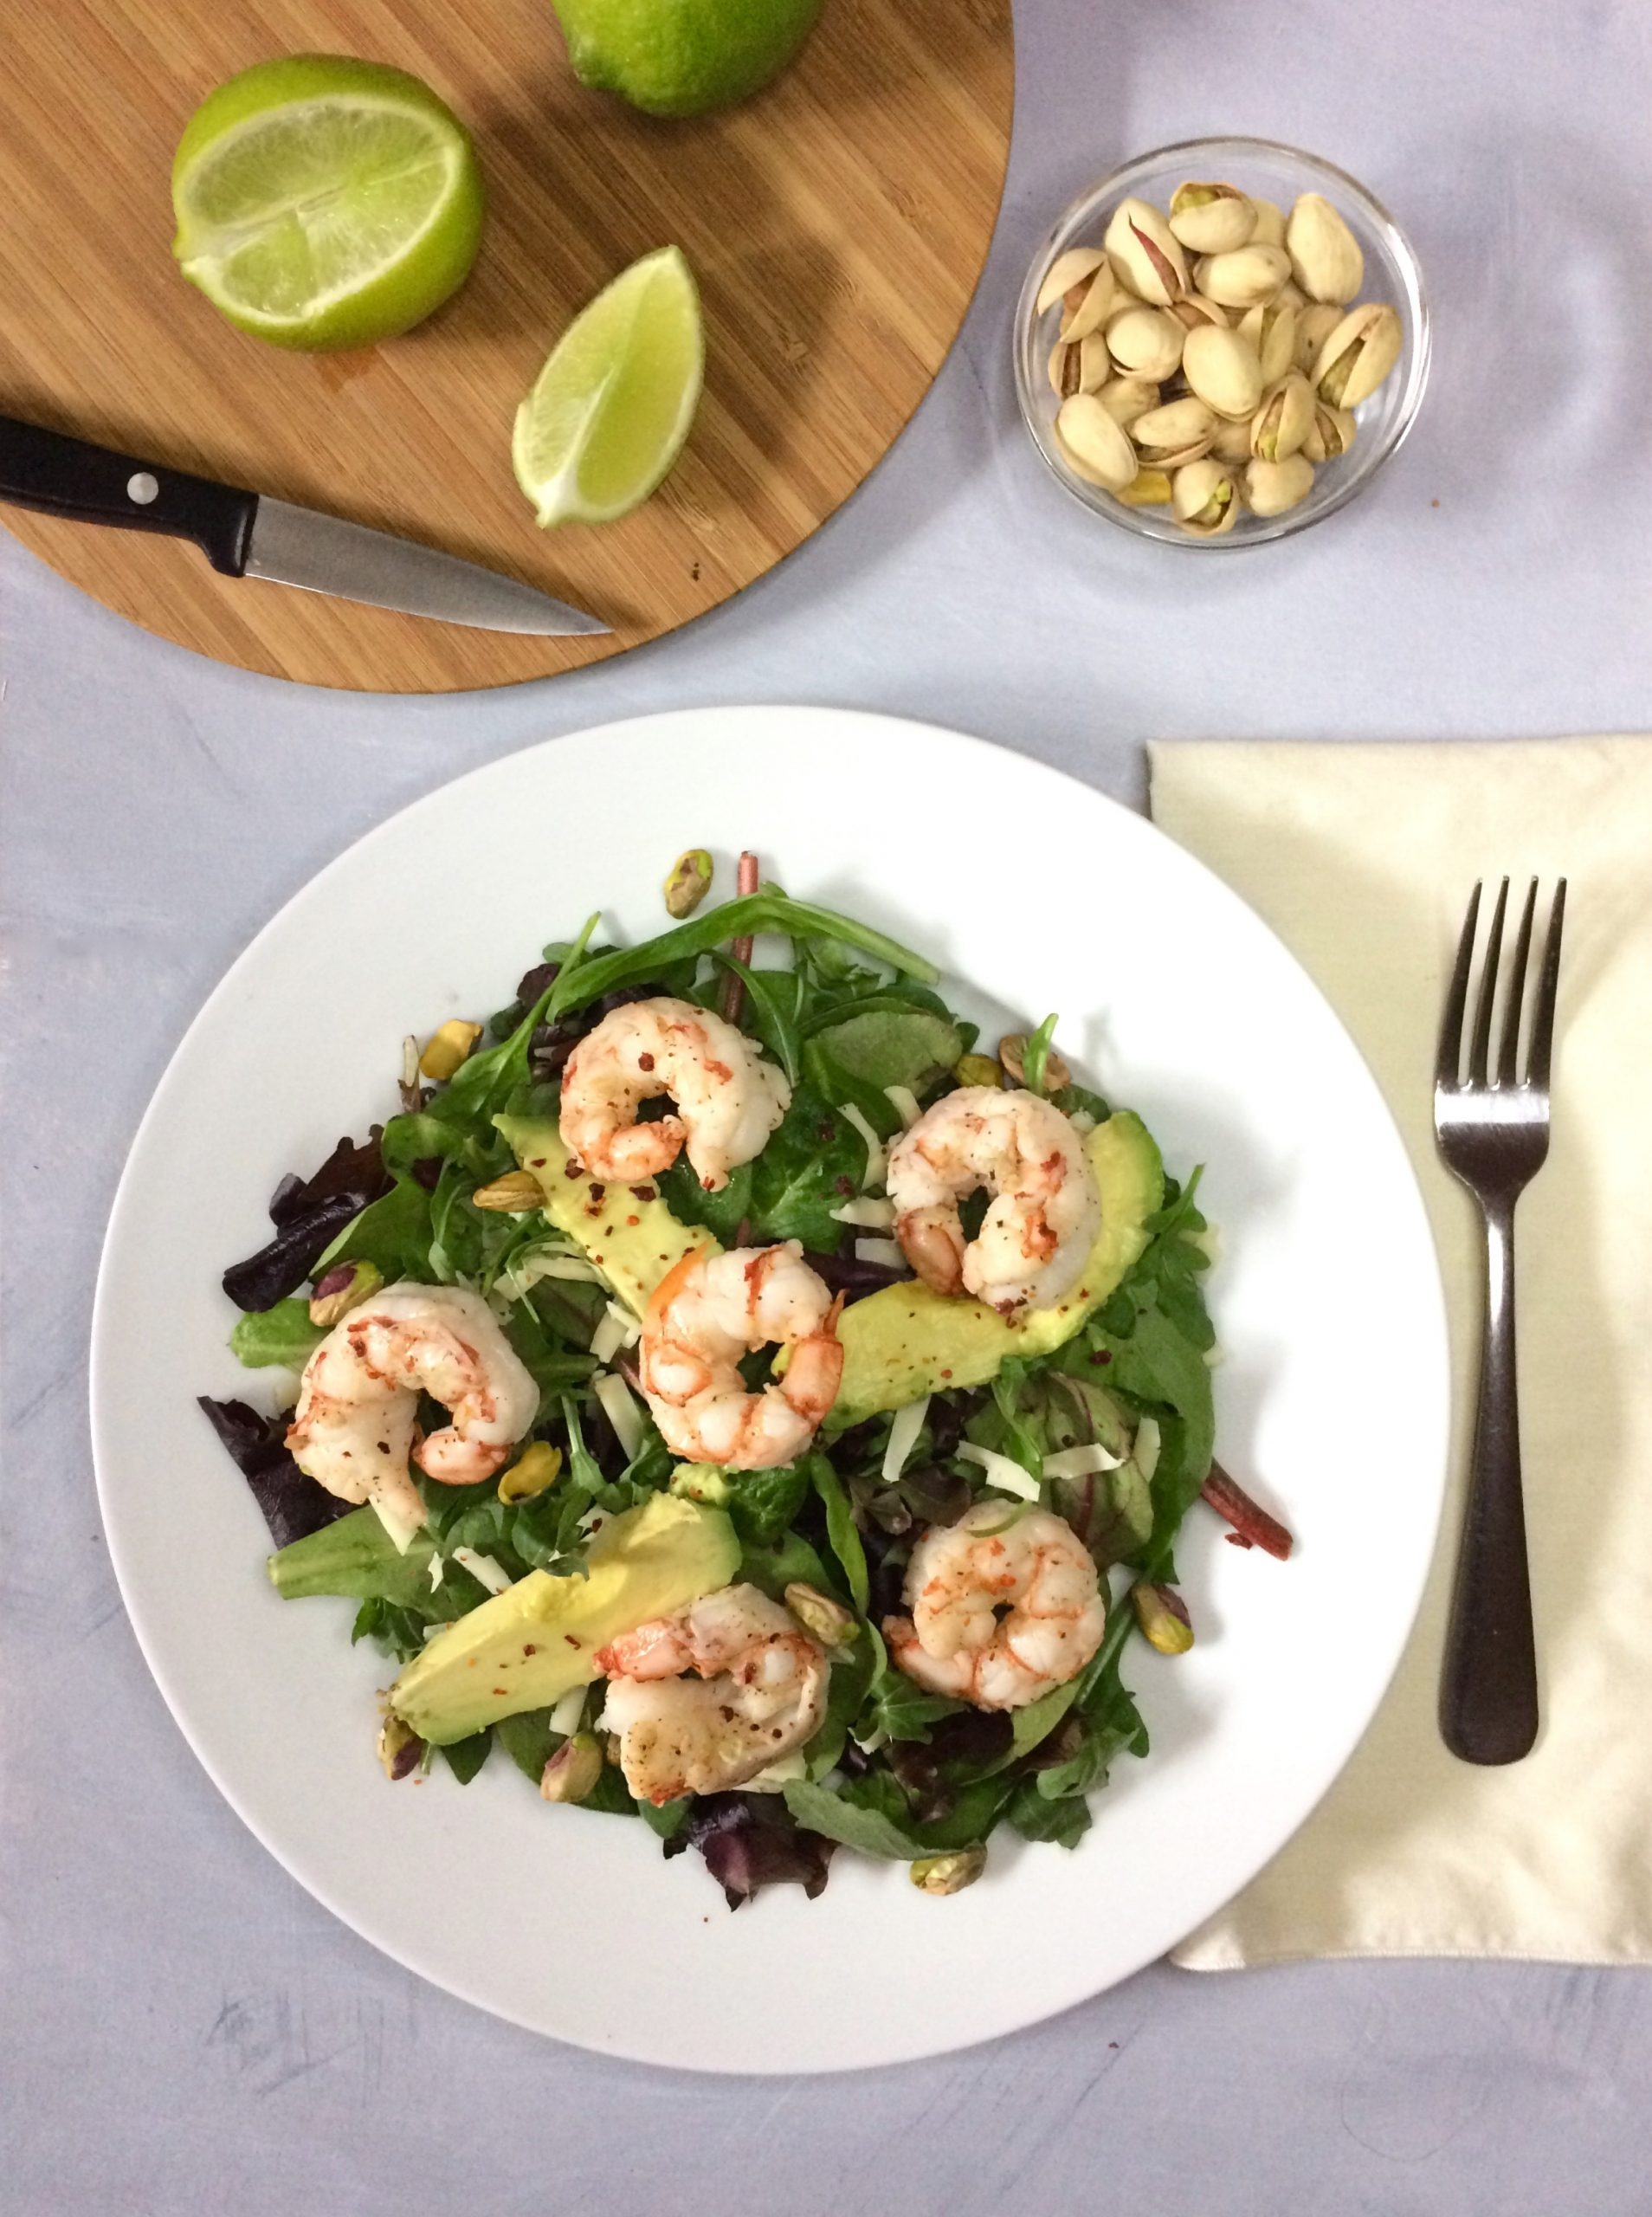 shrimp on lettuce